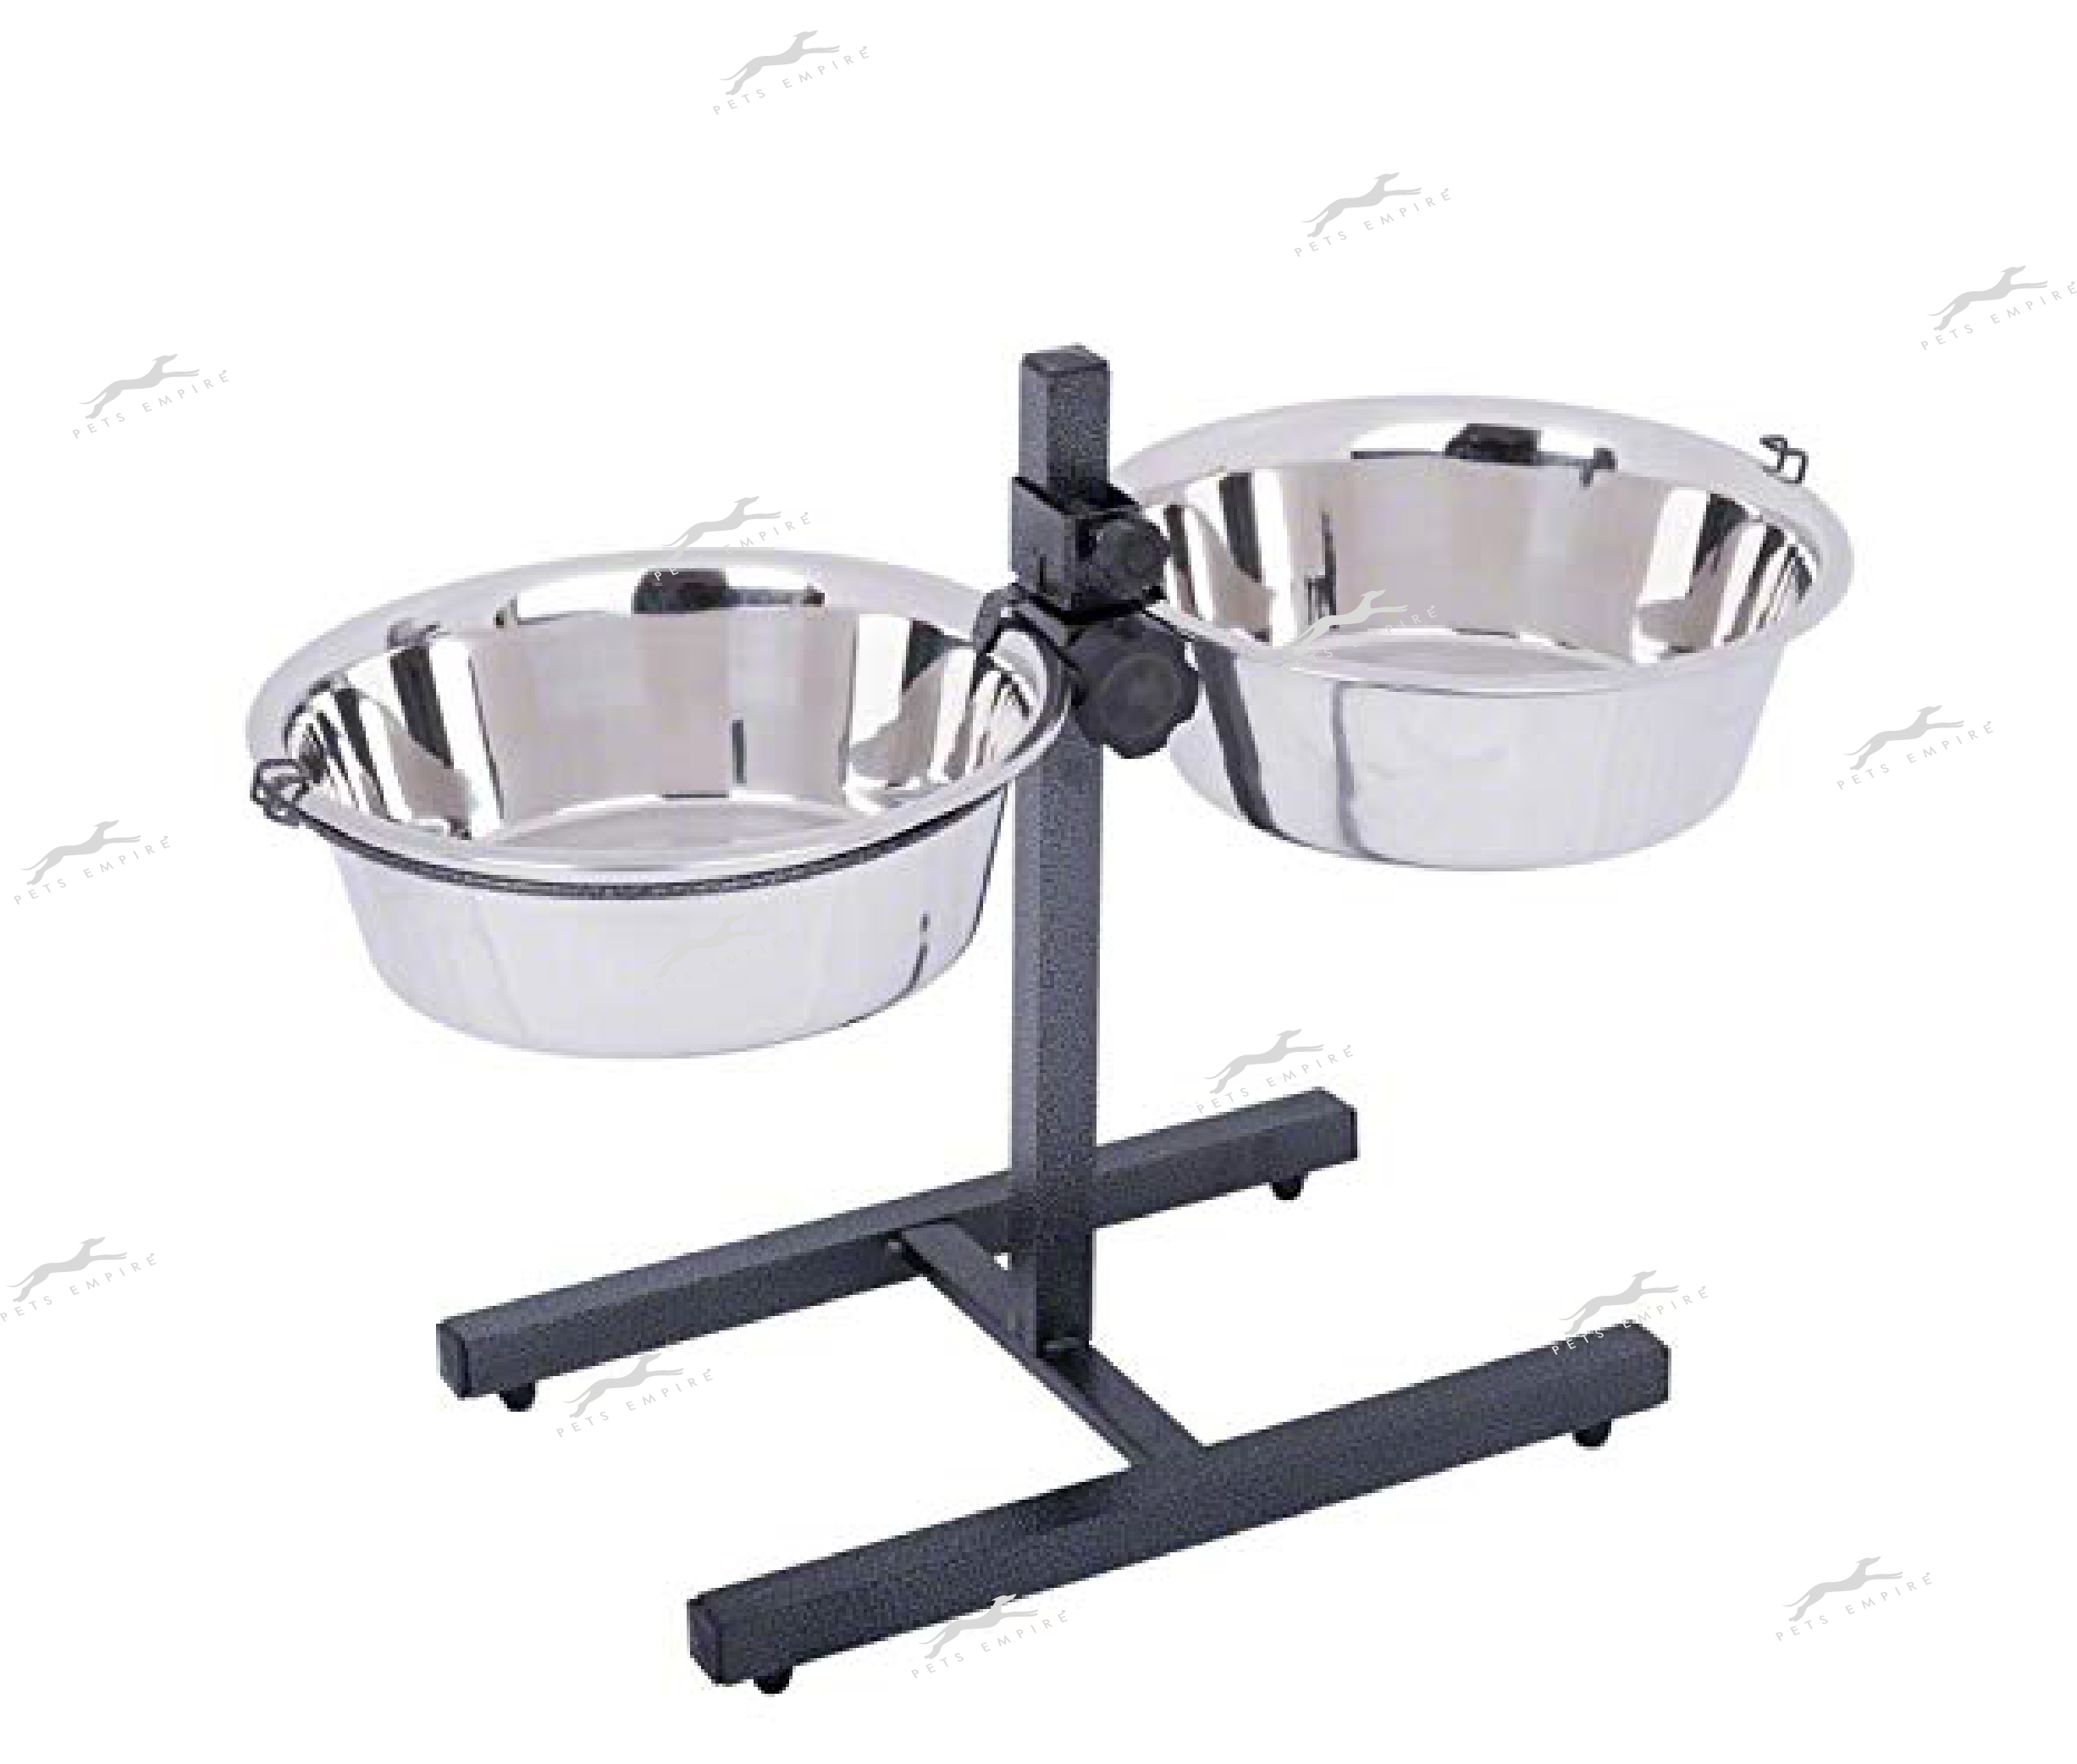 Pets Empire Adjustable Steel Stand With 2 Pieces Bowl For Dogs -900ML.Pack Of 1